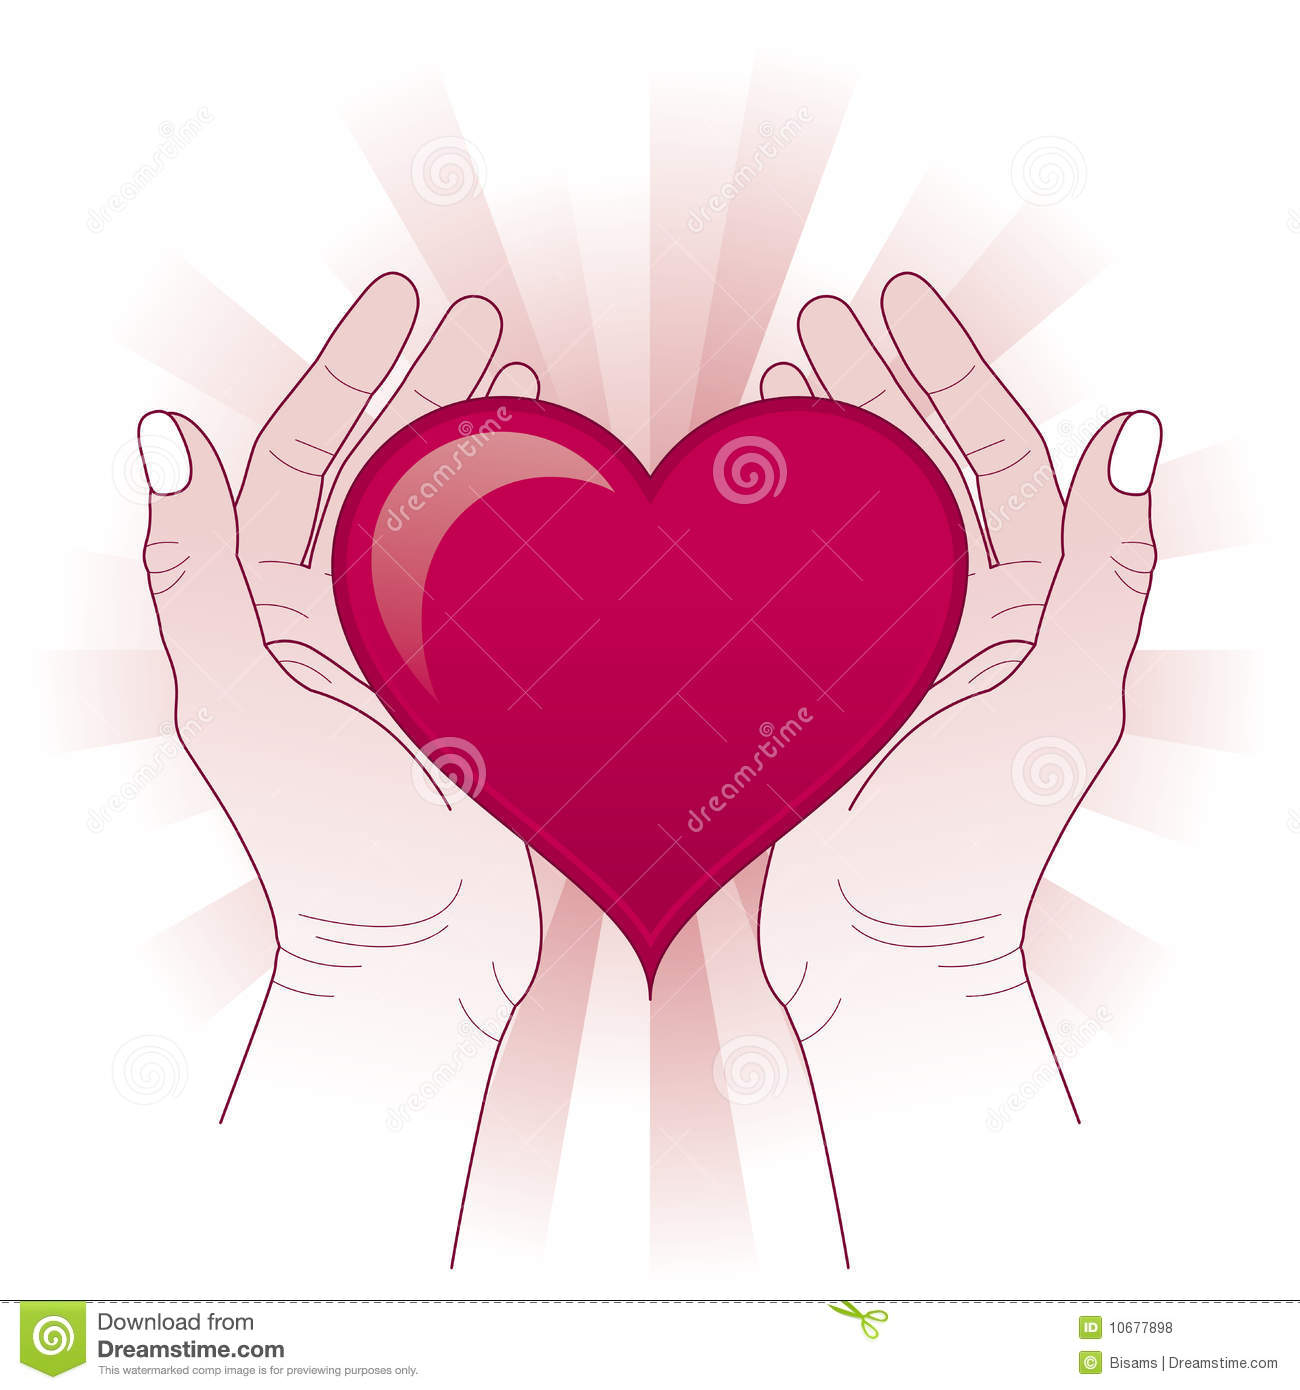 Hand Heart Clipart - Clipart Suggest